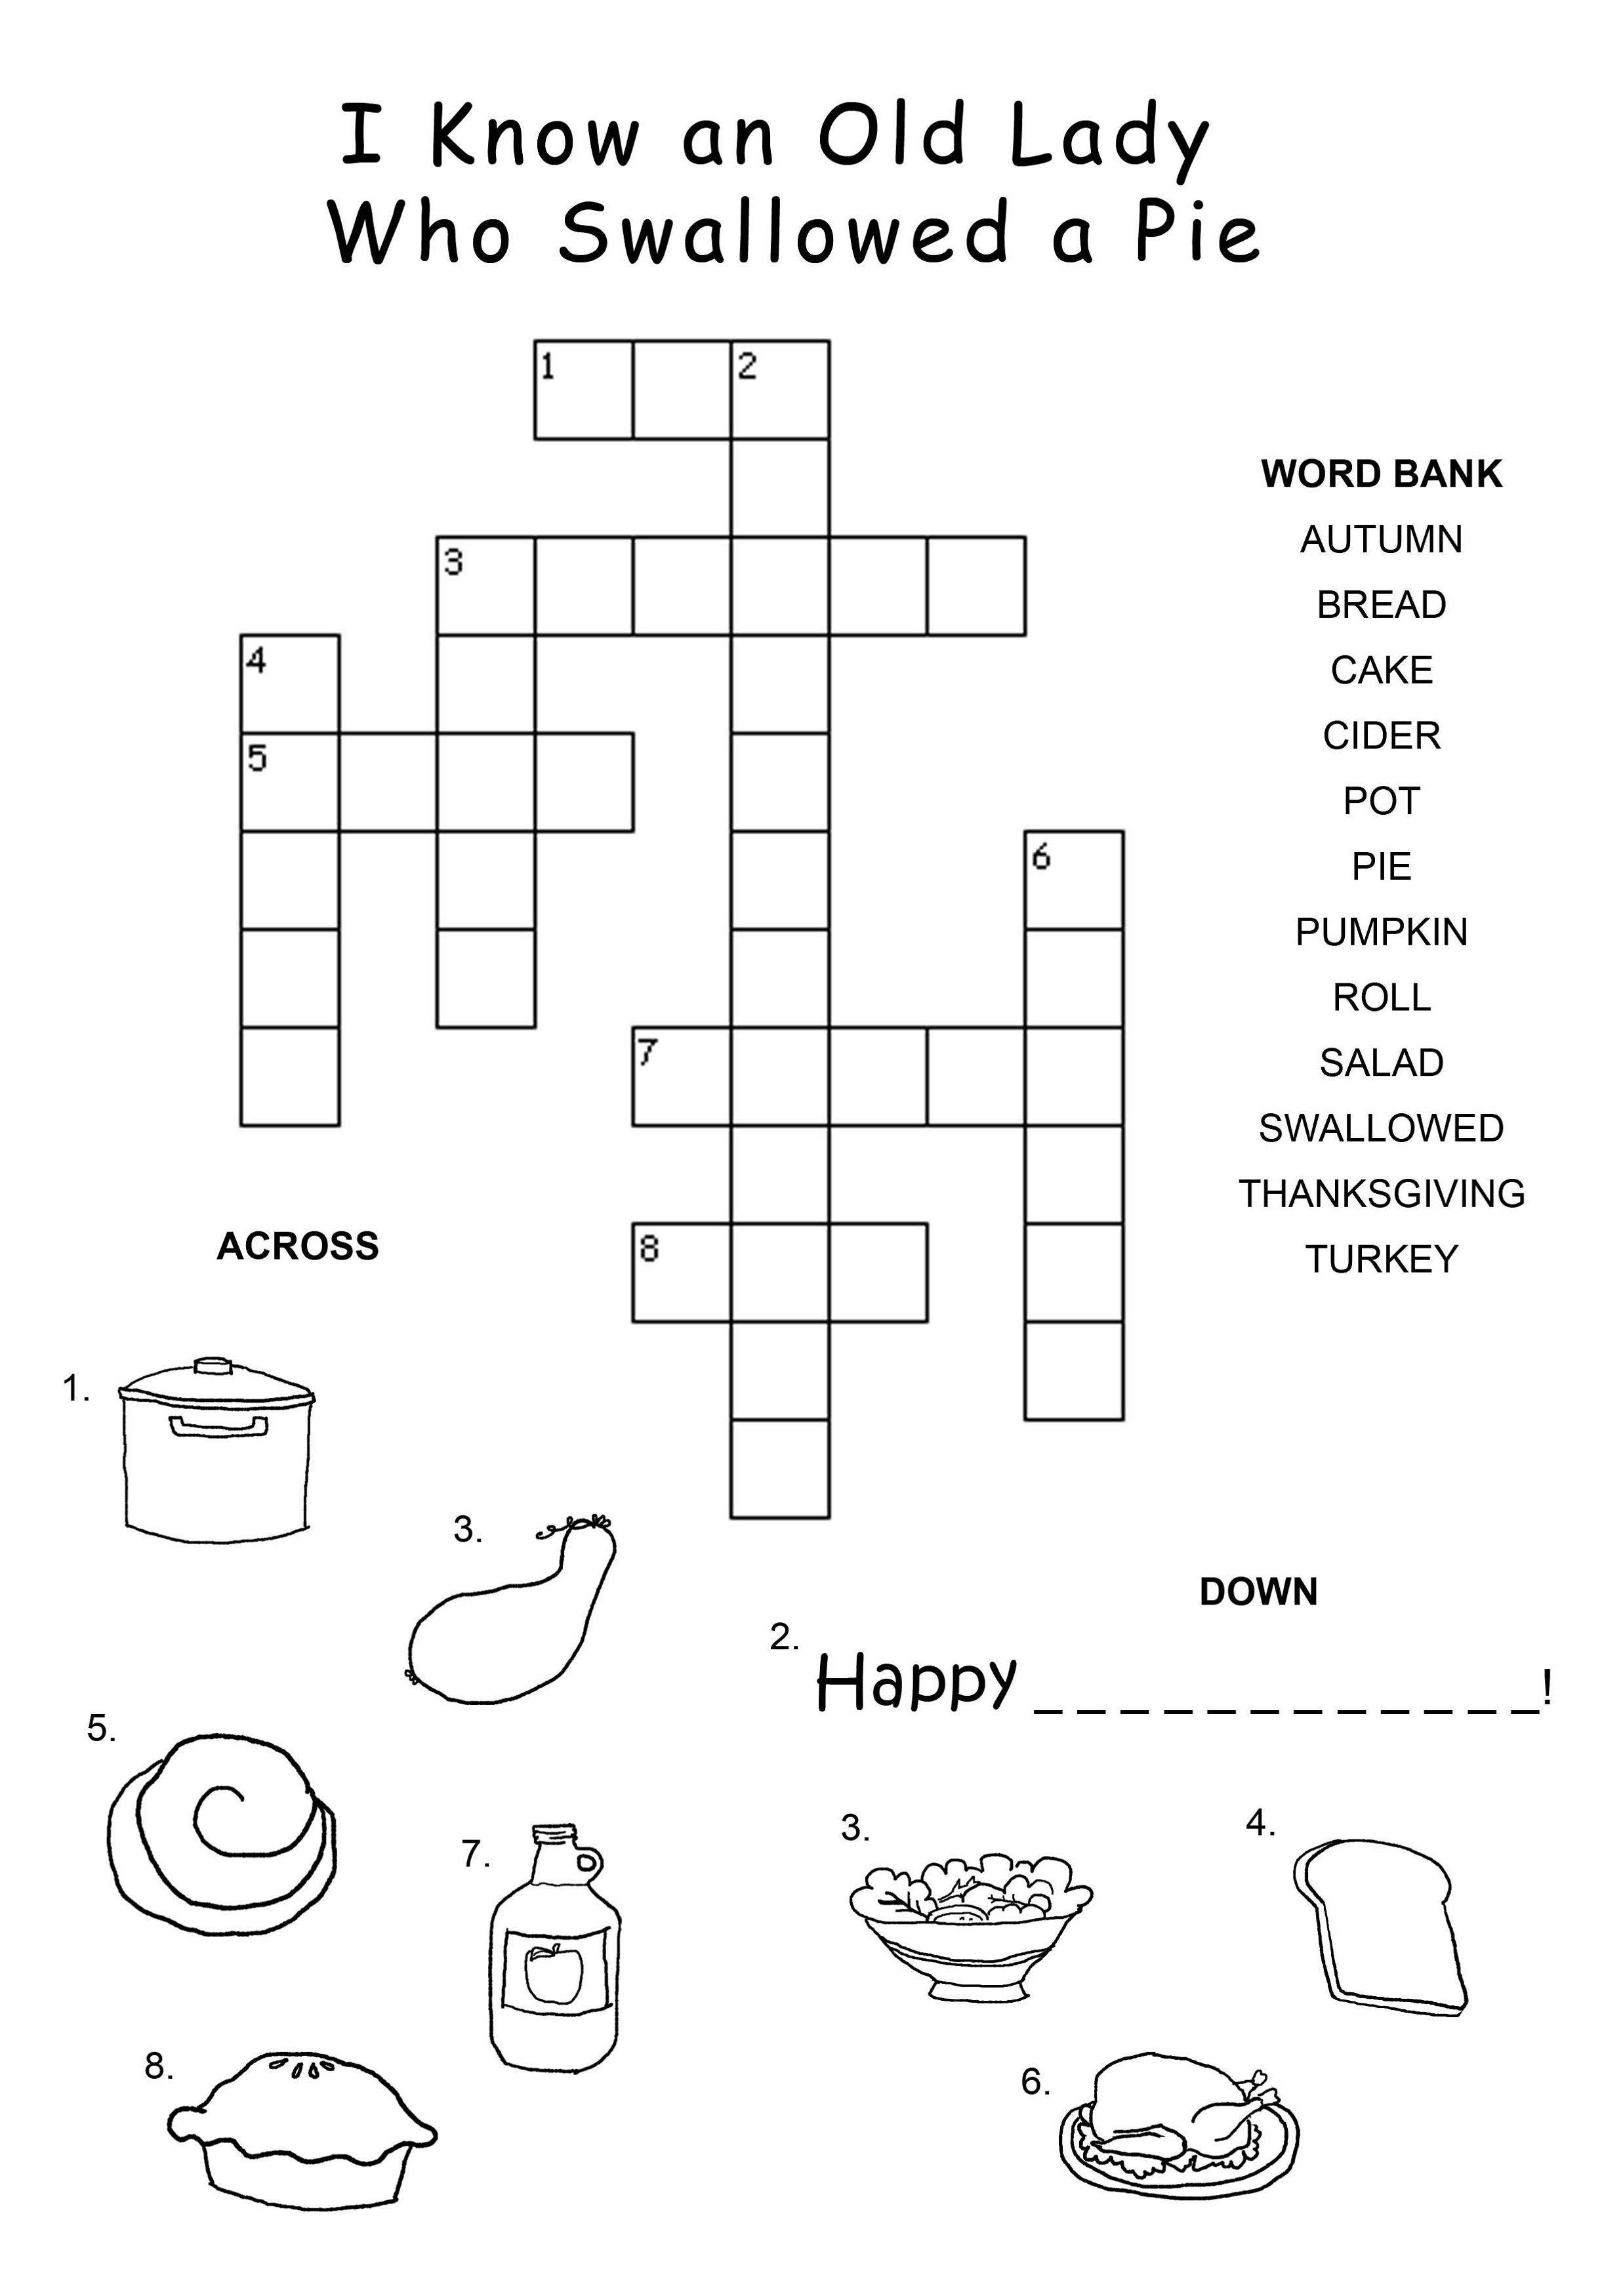 Easy Thanksgiving Crossword Puzzles For Kids | Kiddo Shelter - Easy Crossword Puzzles Printable For Kids